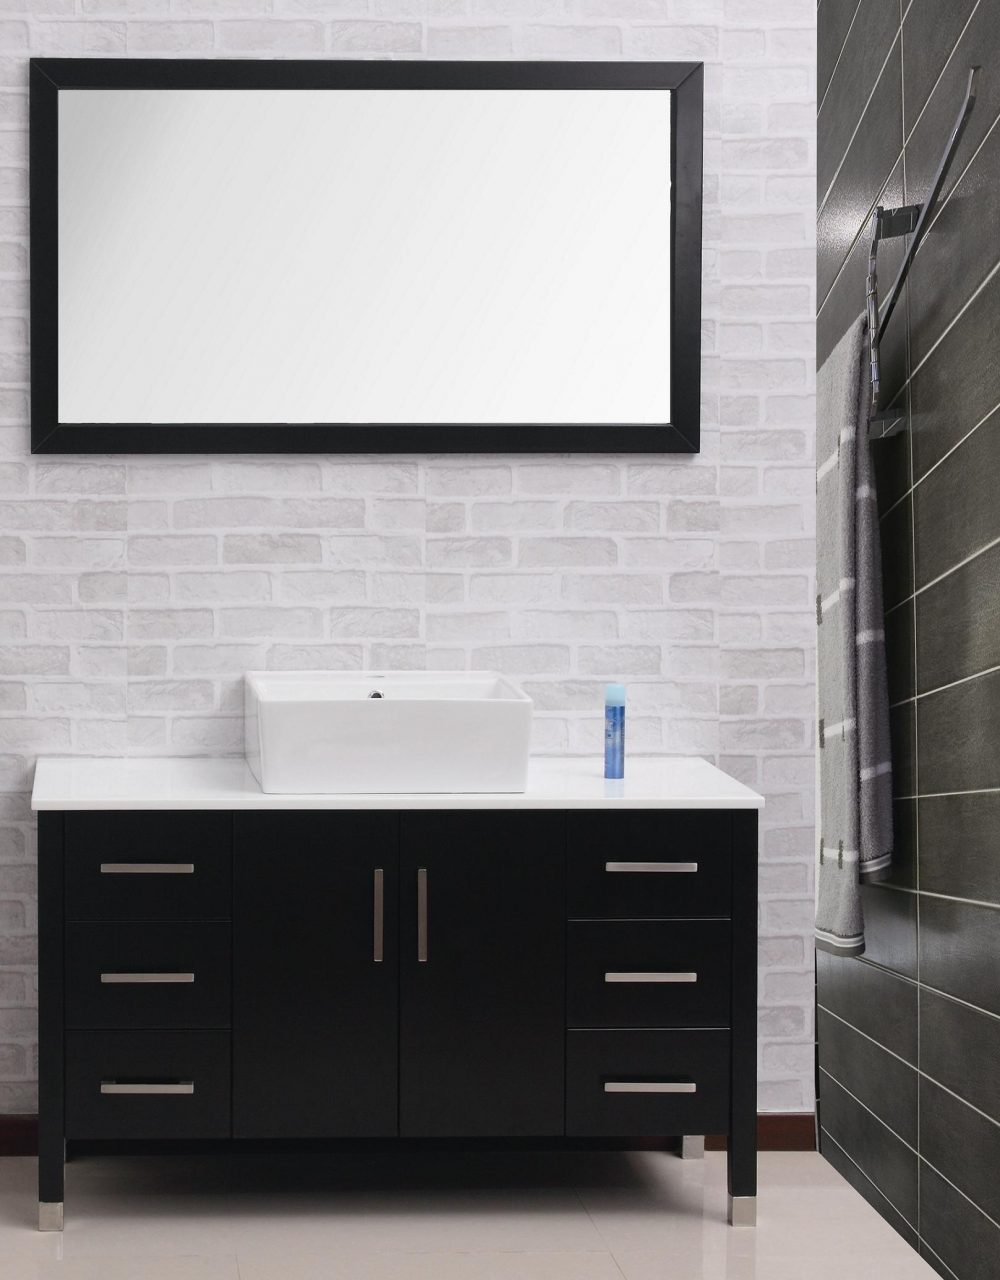 Bathroom Chic Modern Wall Cabinet Design With Floating Black Amazing